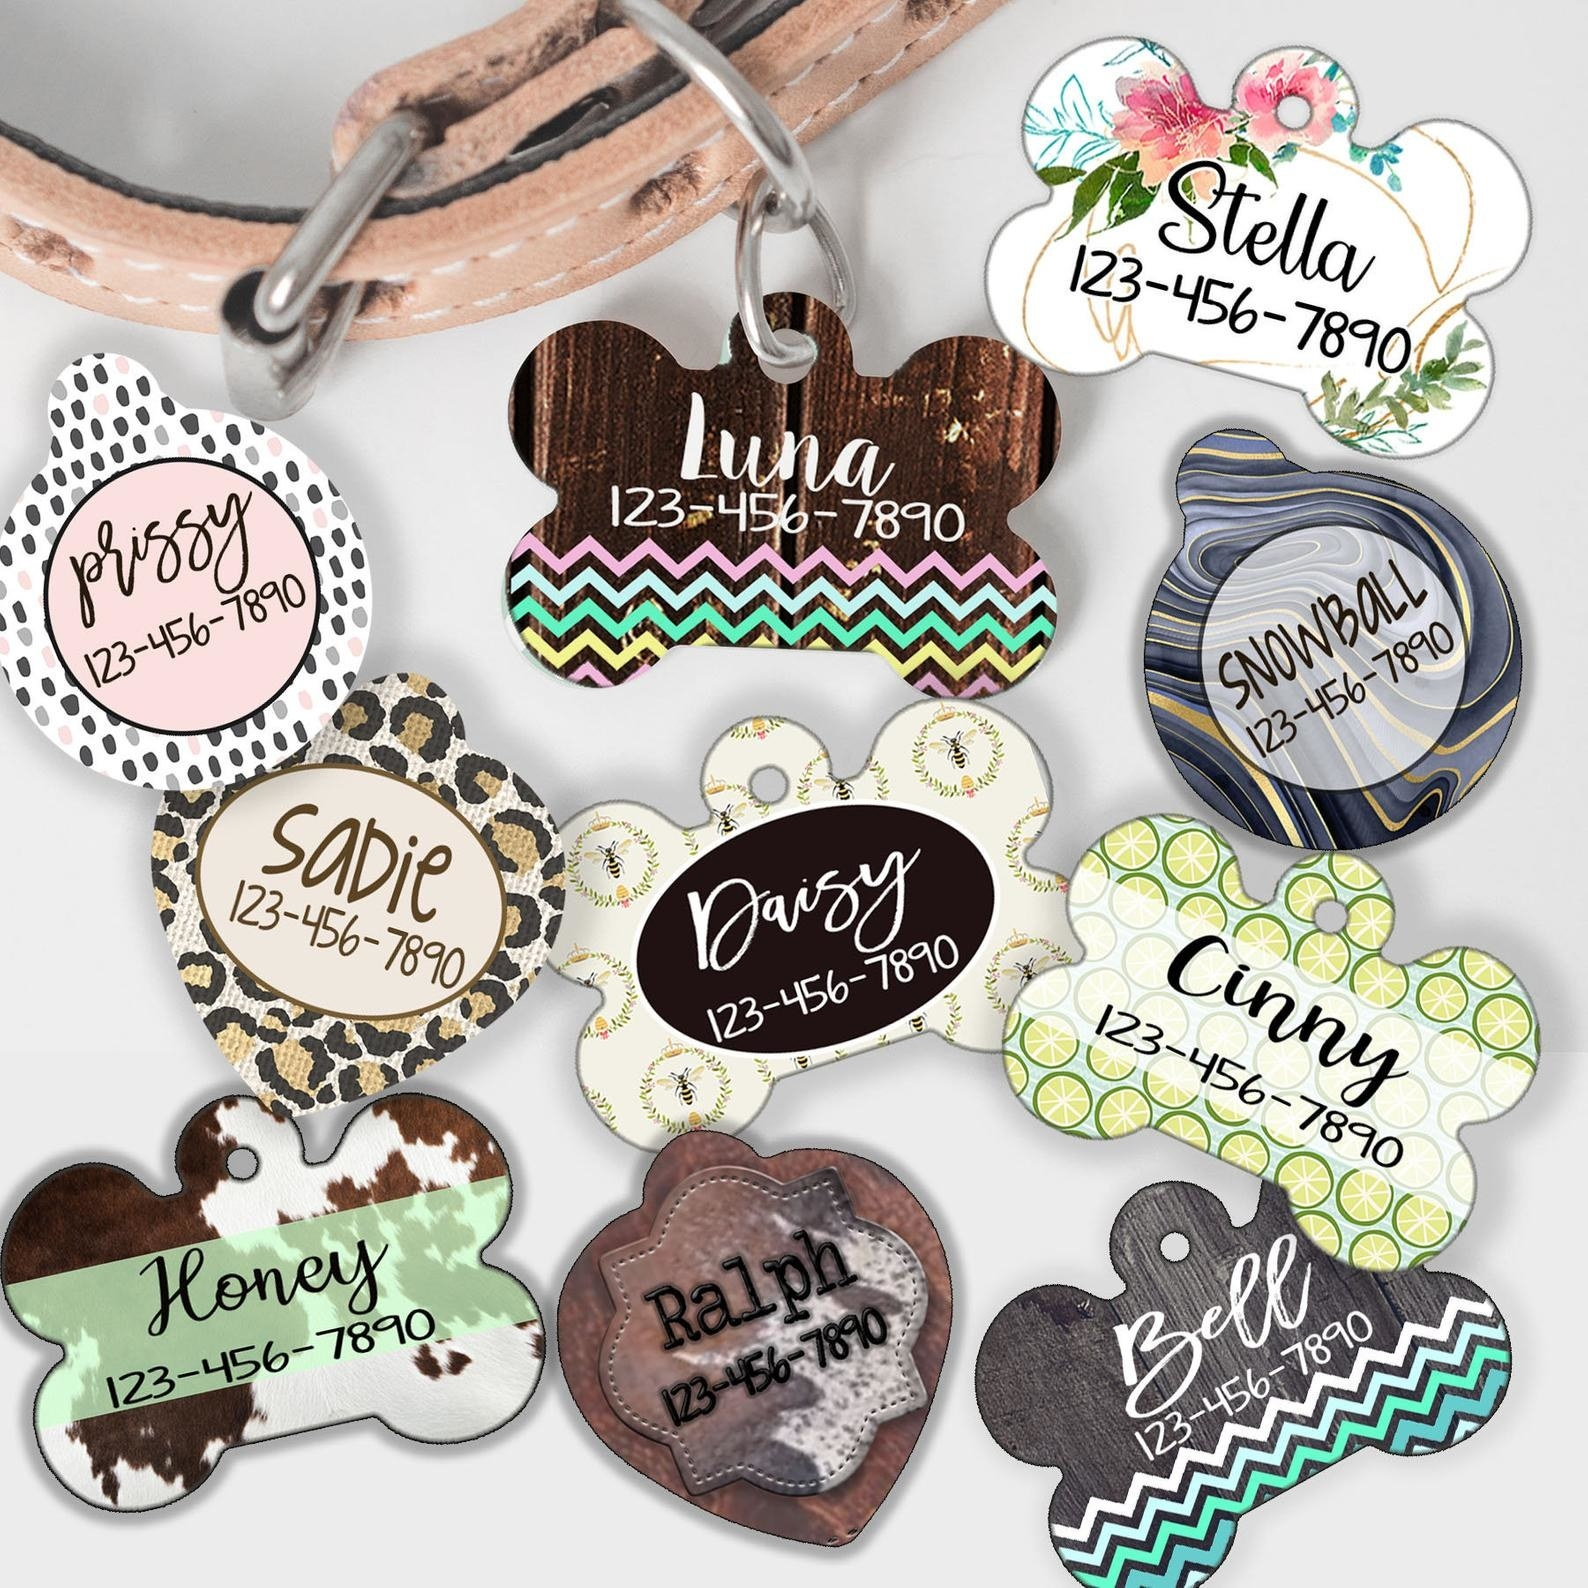 Ten dog tags in various shapes and patterns